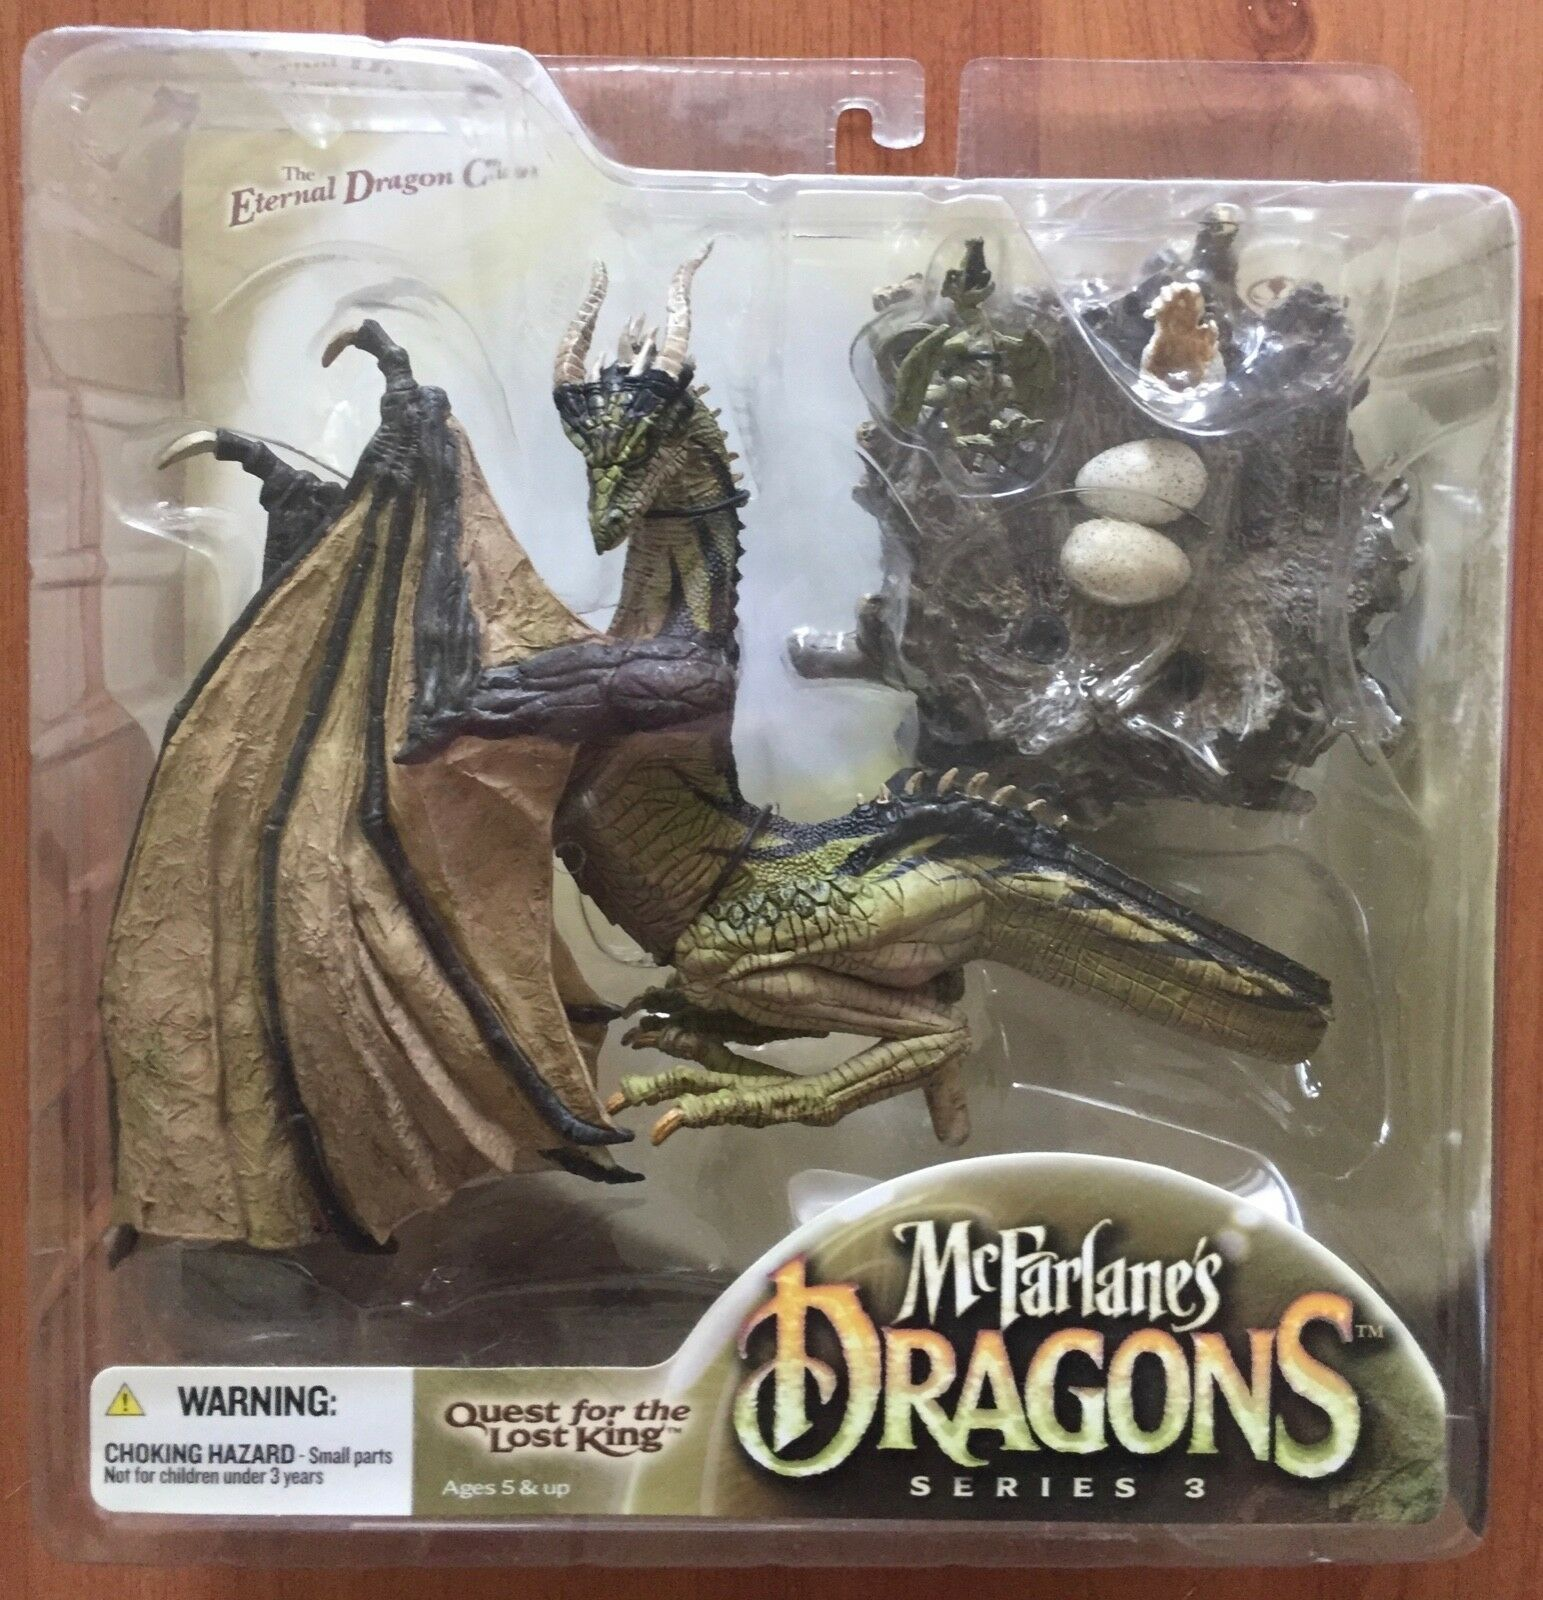 MCFARLANE'S DRAGONS SERIES 3 ETERNAL CLAN DRAGON FIGURE QUEST FOR THE LOST KING